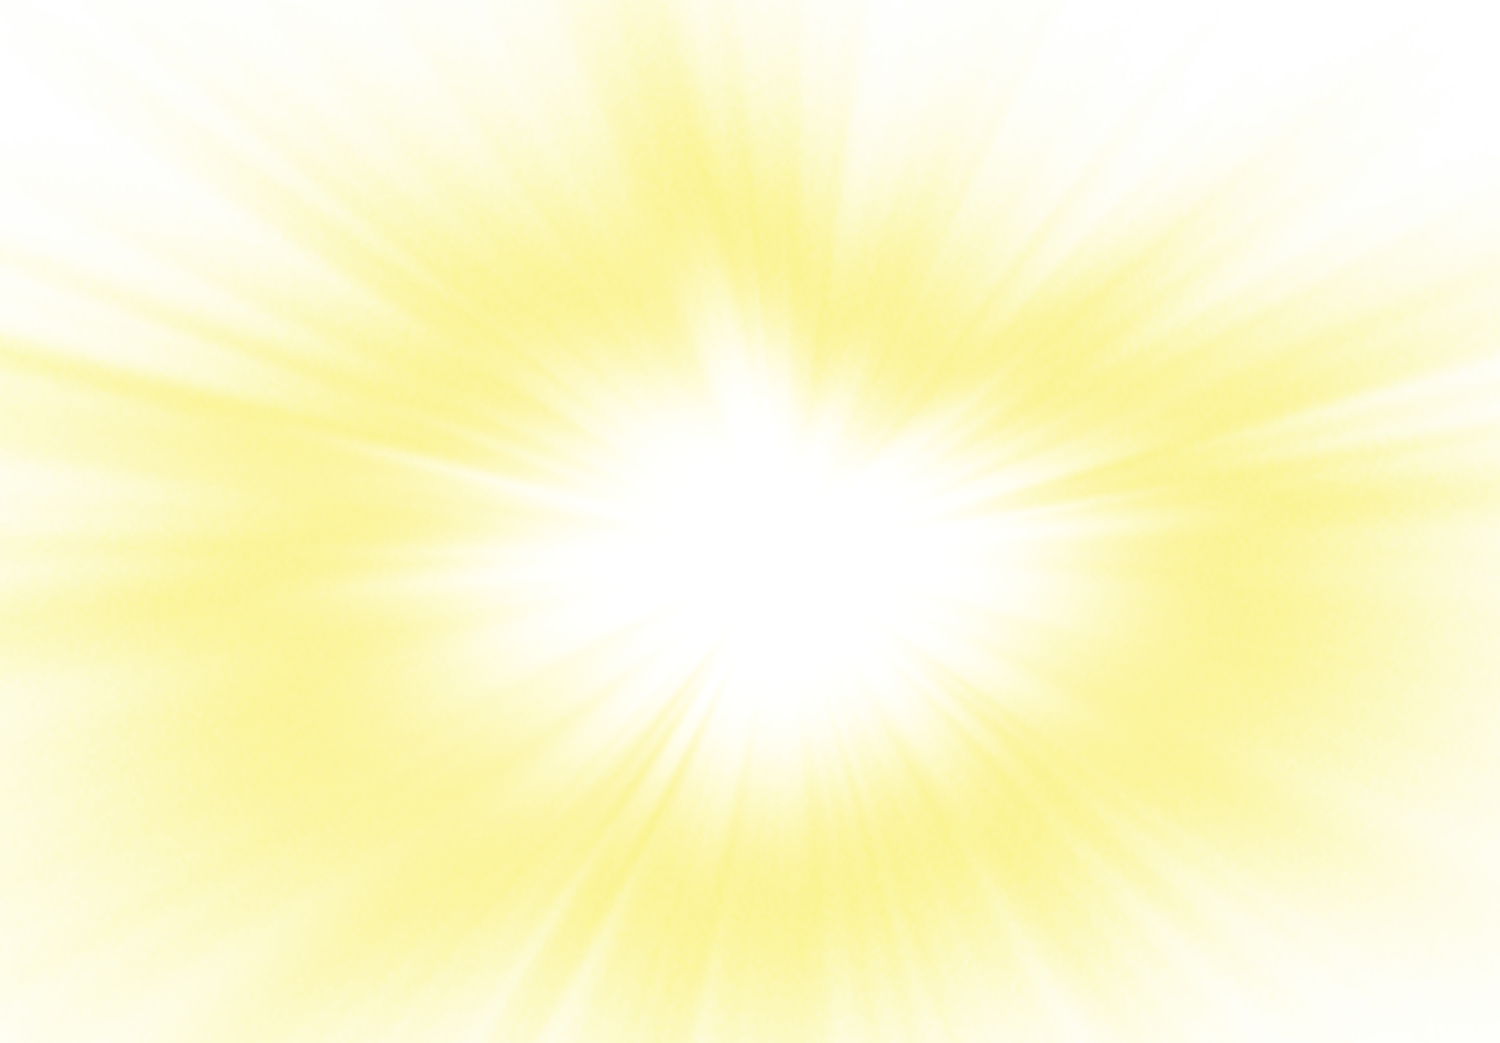 Beautiful Golden Rays Glare Efficacy Sun Sunlight PNG Image